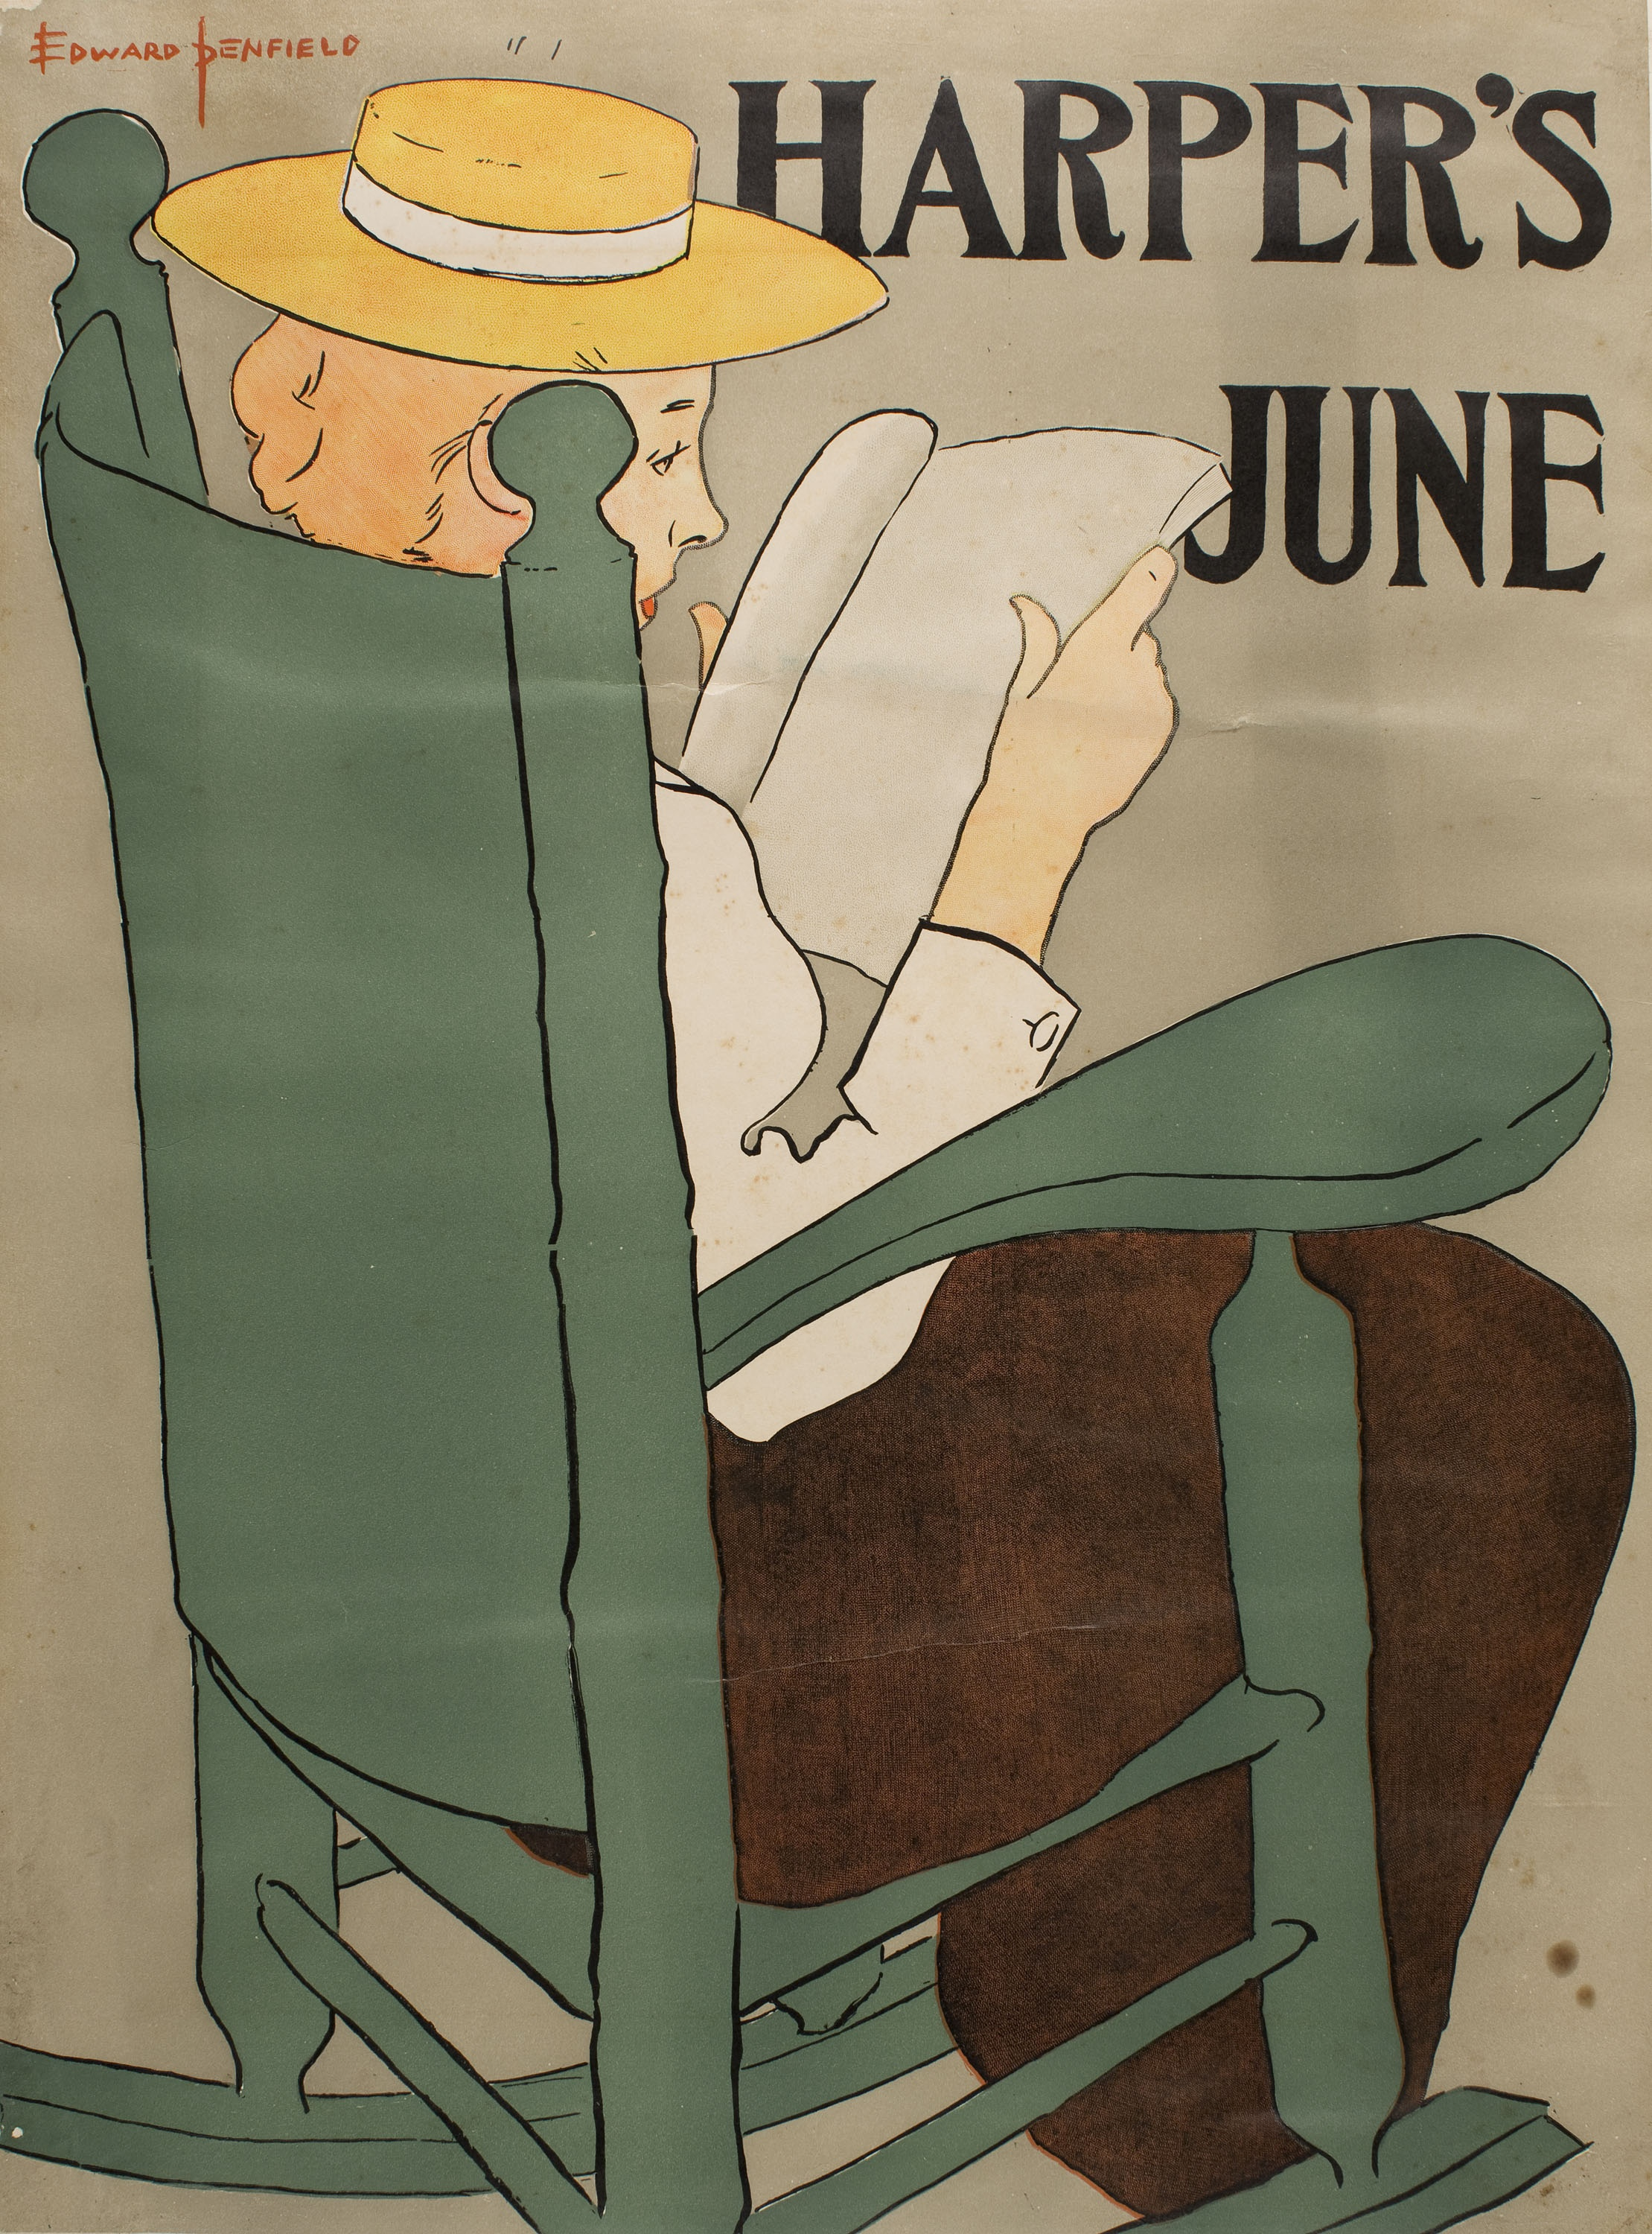 Edward Penfield - Harper's June - 1896